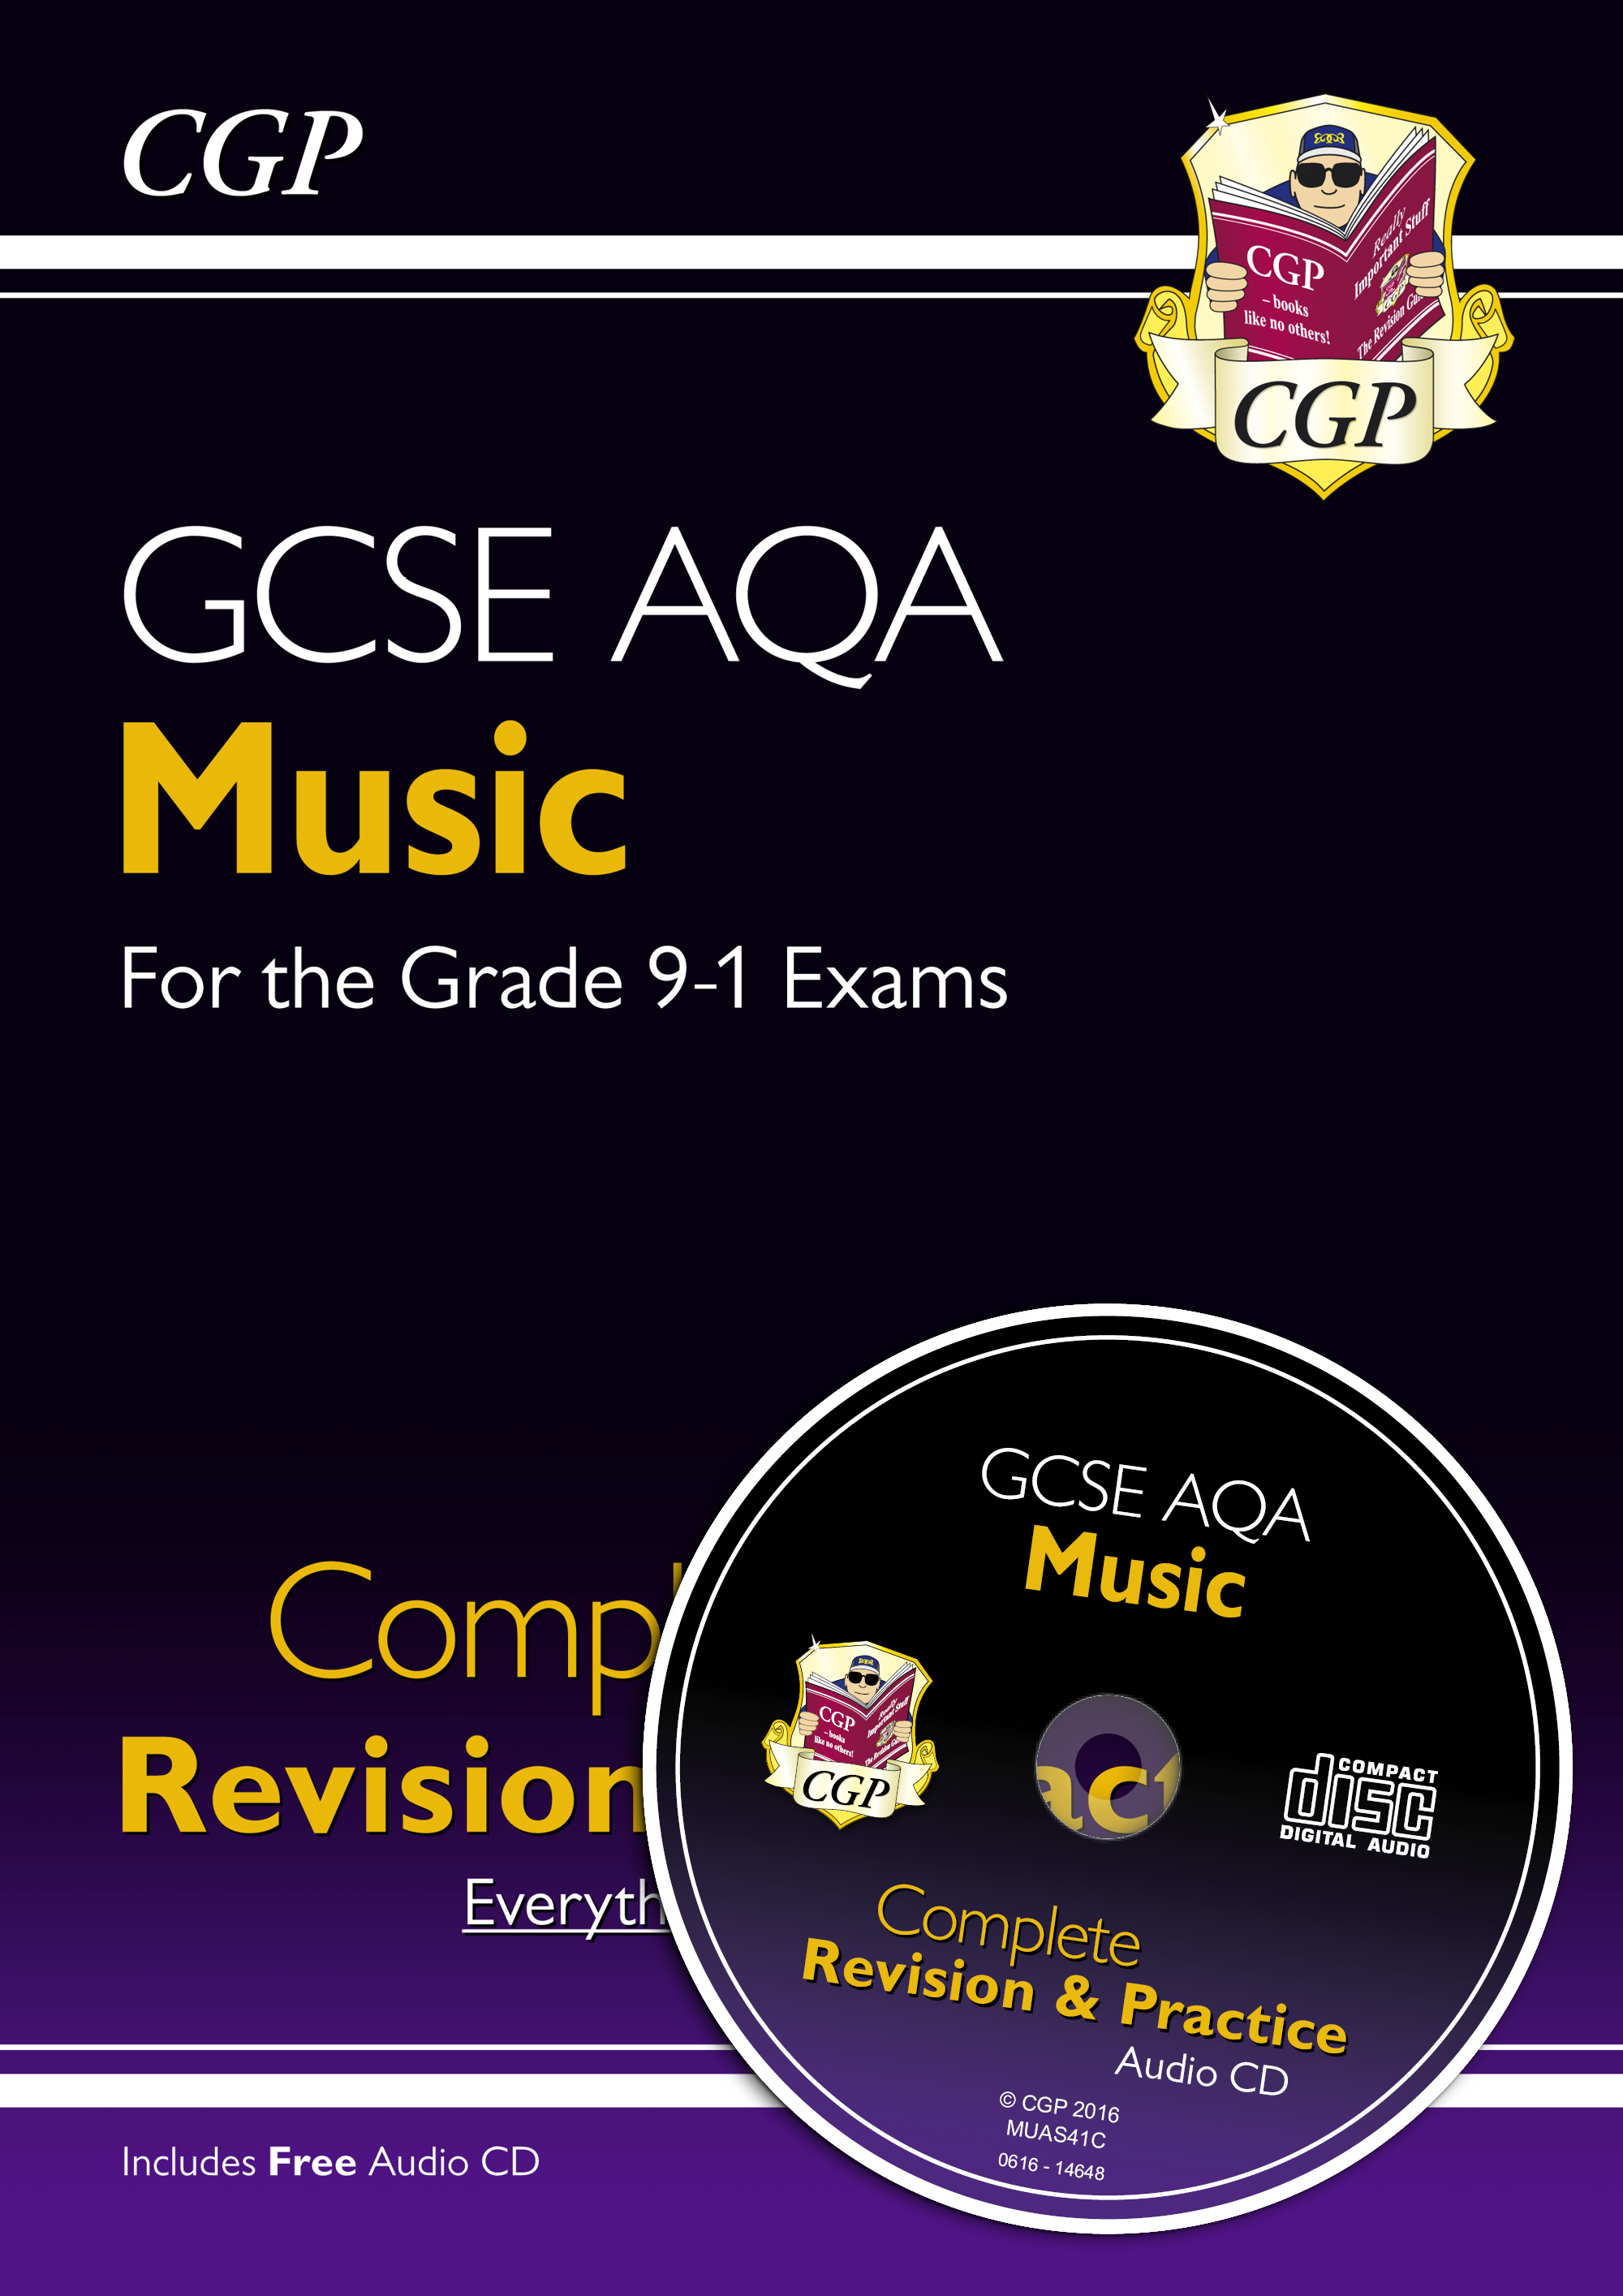 MUAS41 - GCSE Music AQA Complete Revision & Practice (with Audio CD) - for the Grade 9-1 Course